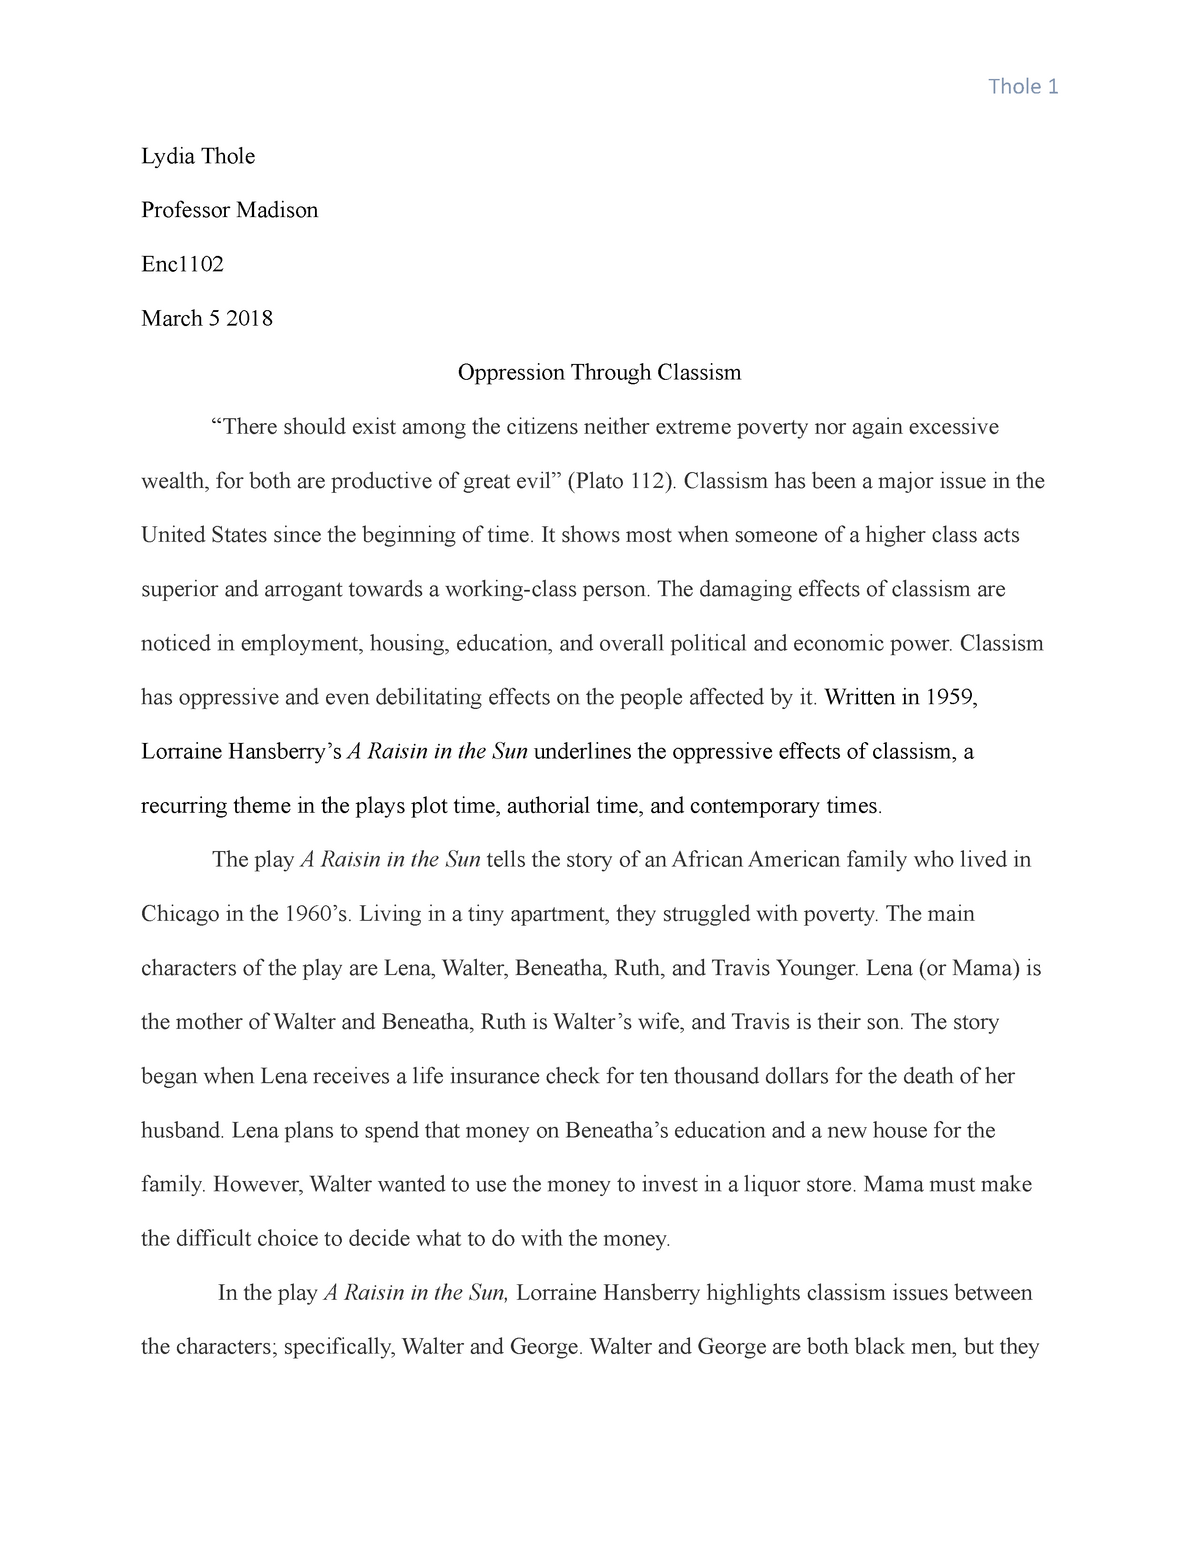 Classism essay streptomyces thesis